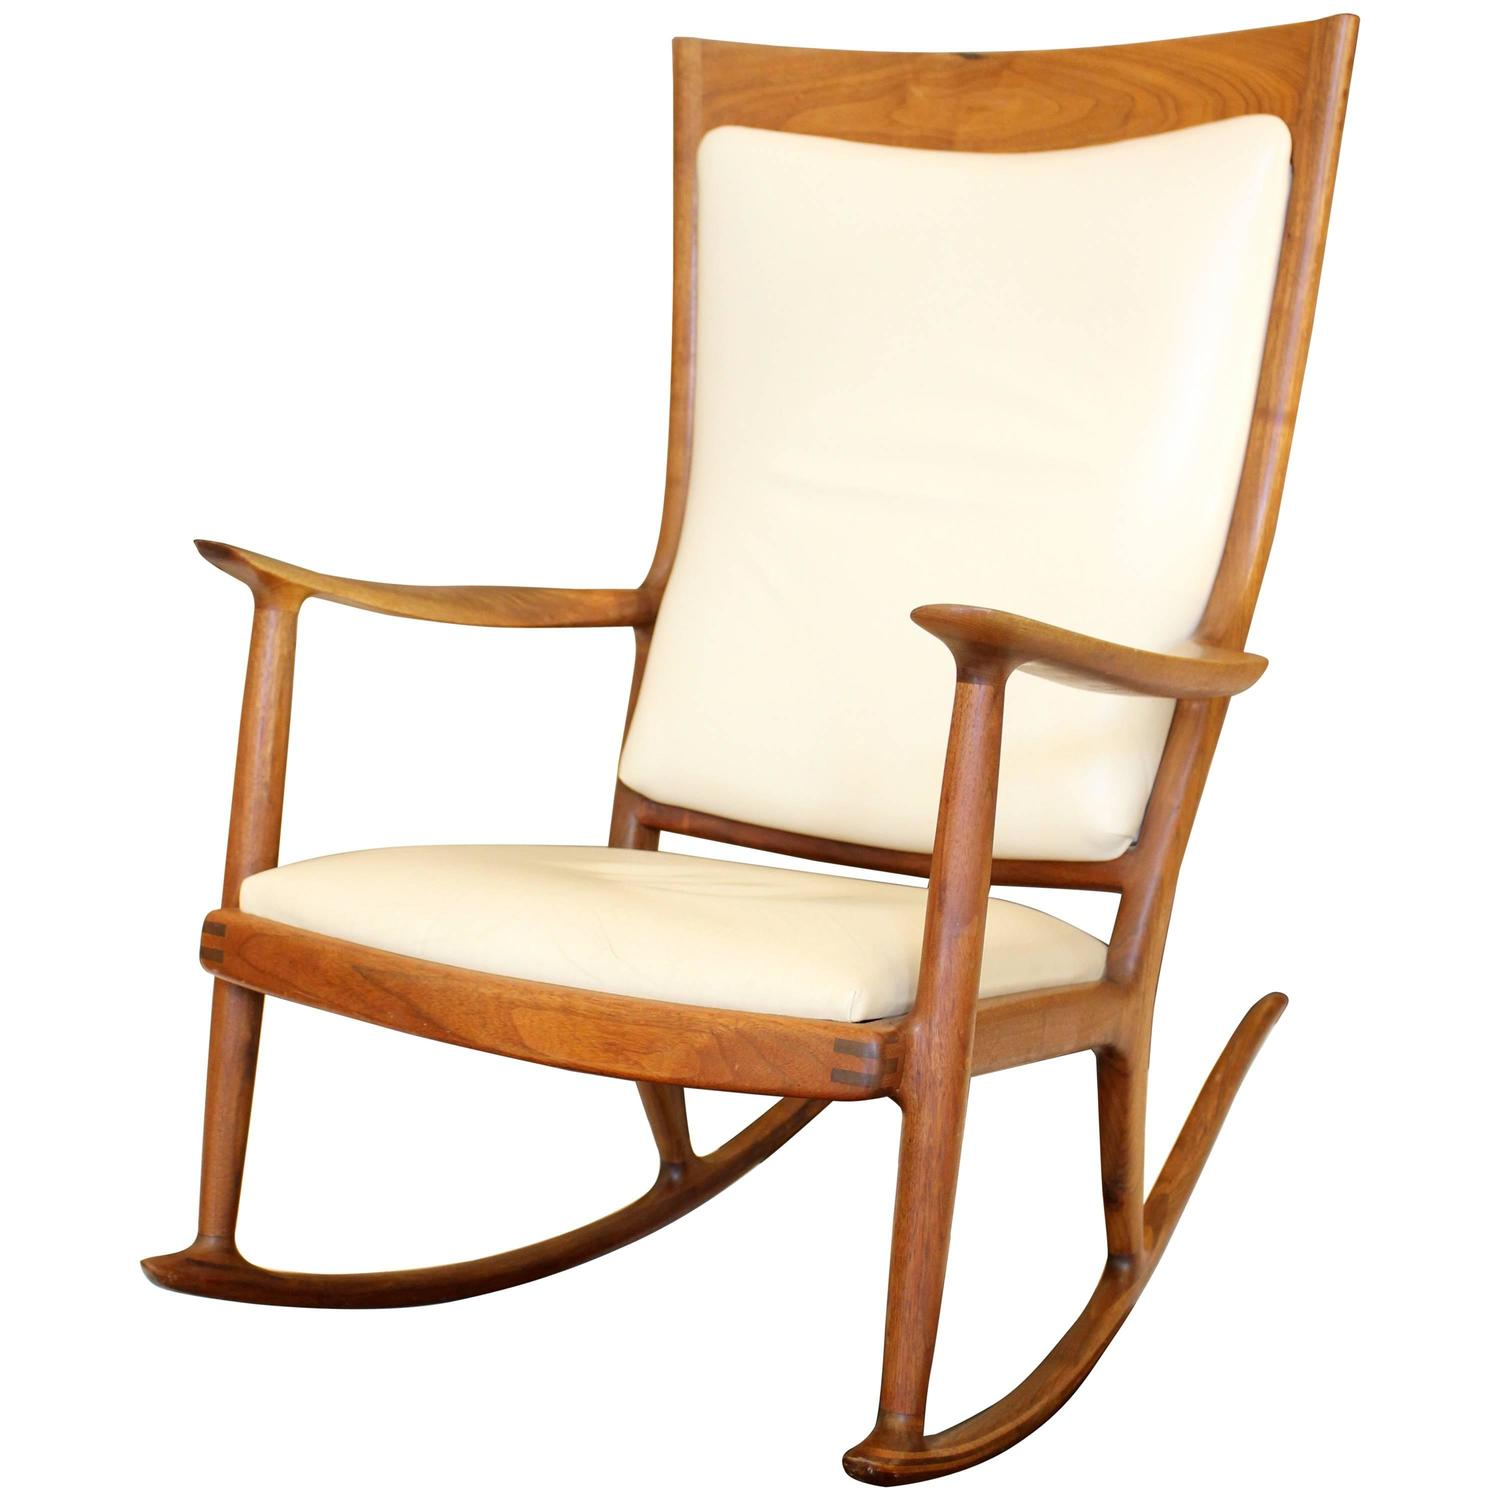 Beautiful Rocking Chairs A Beautiful Sam Maloof Rocking Chair For Sale At 1stdibs